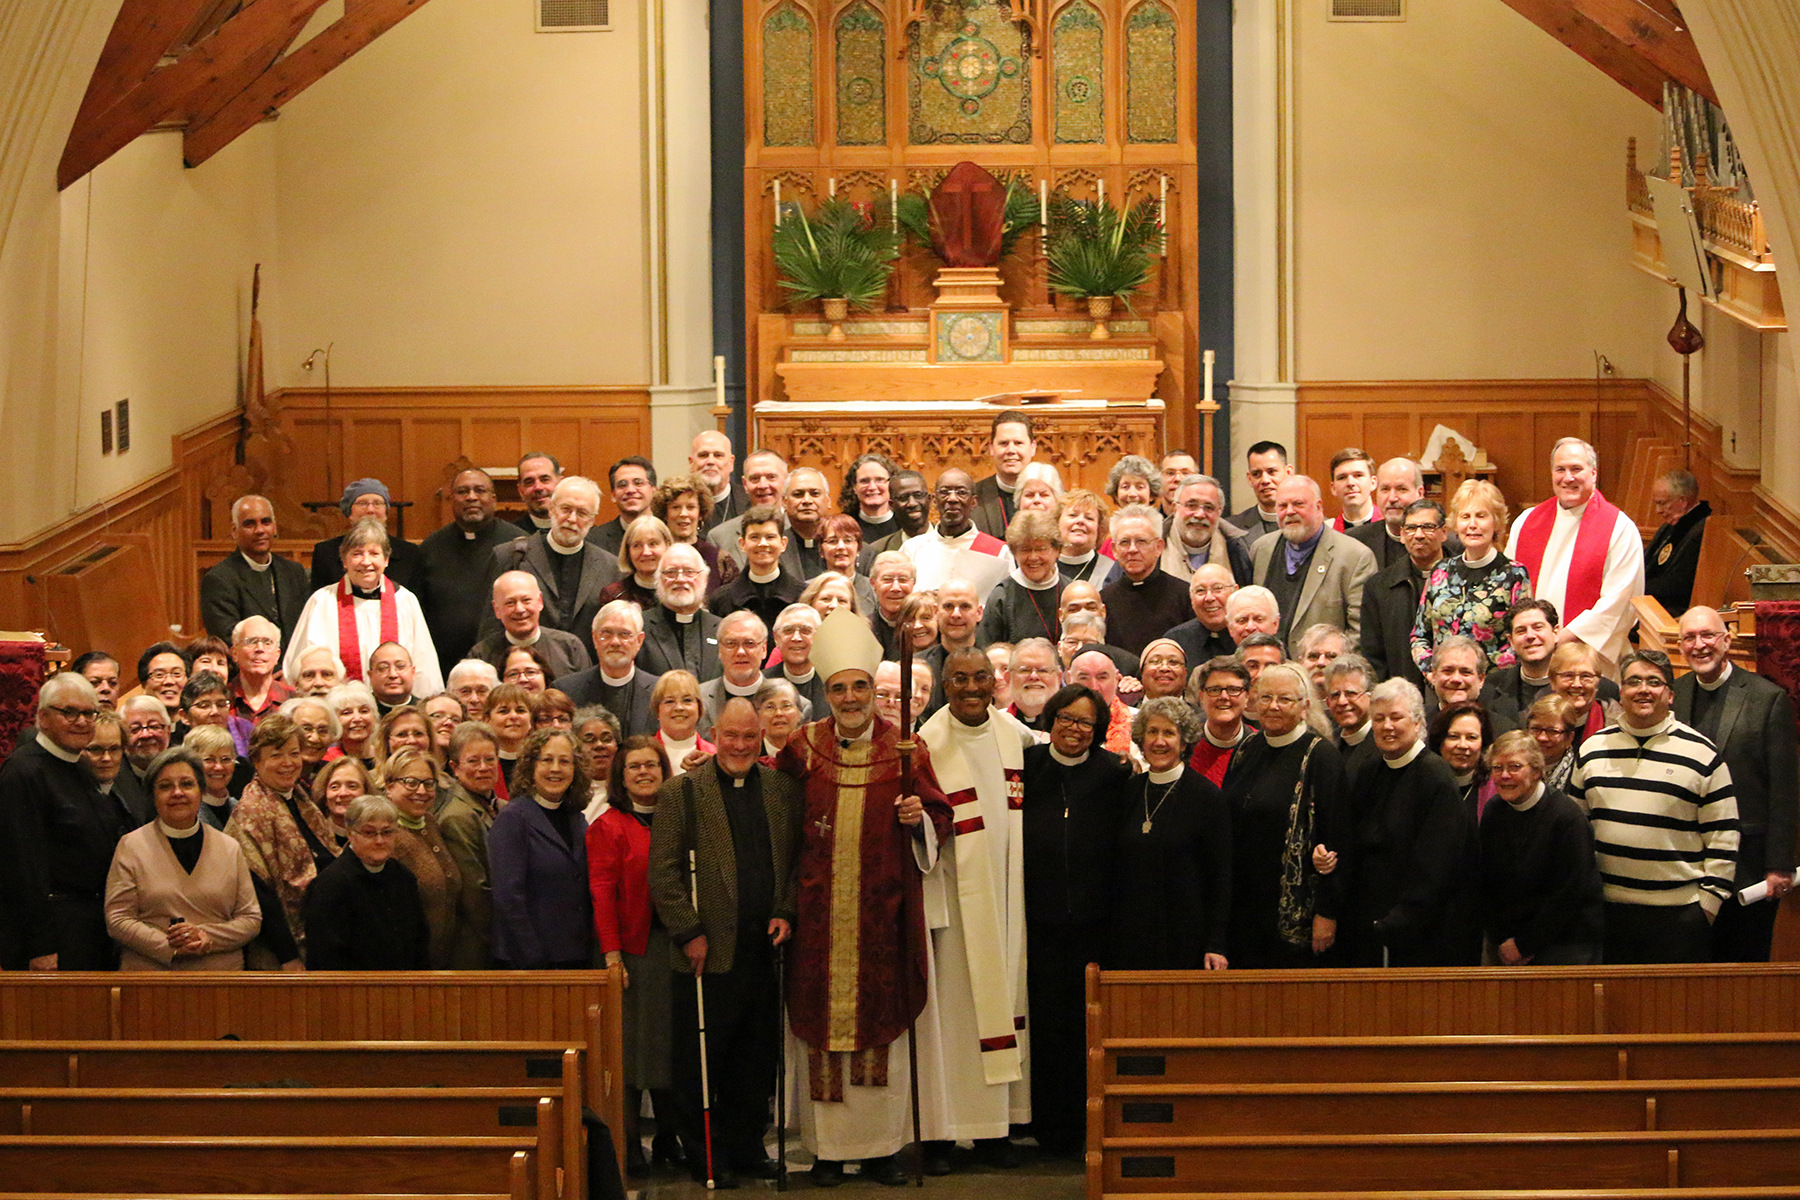 Clergy Group Portrait, March 2015